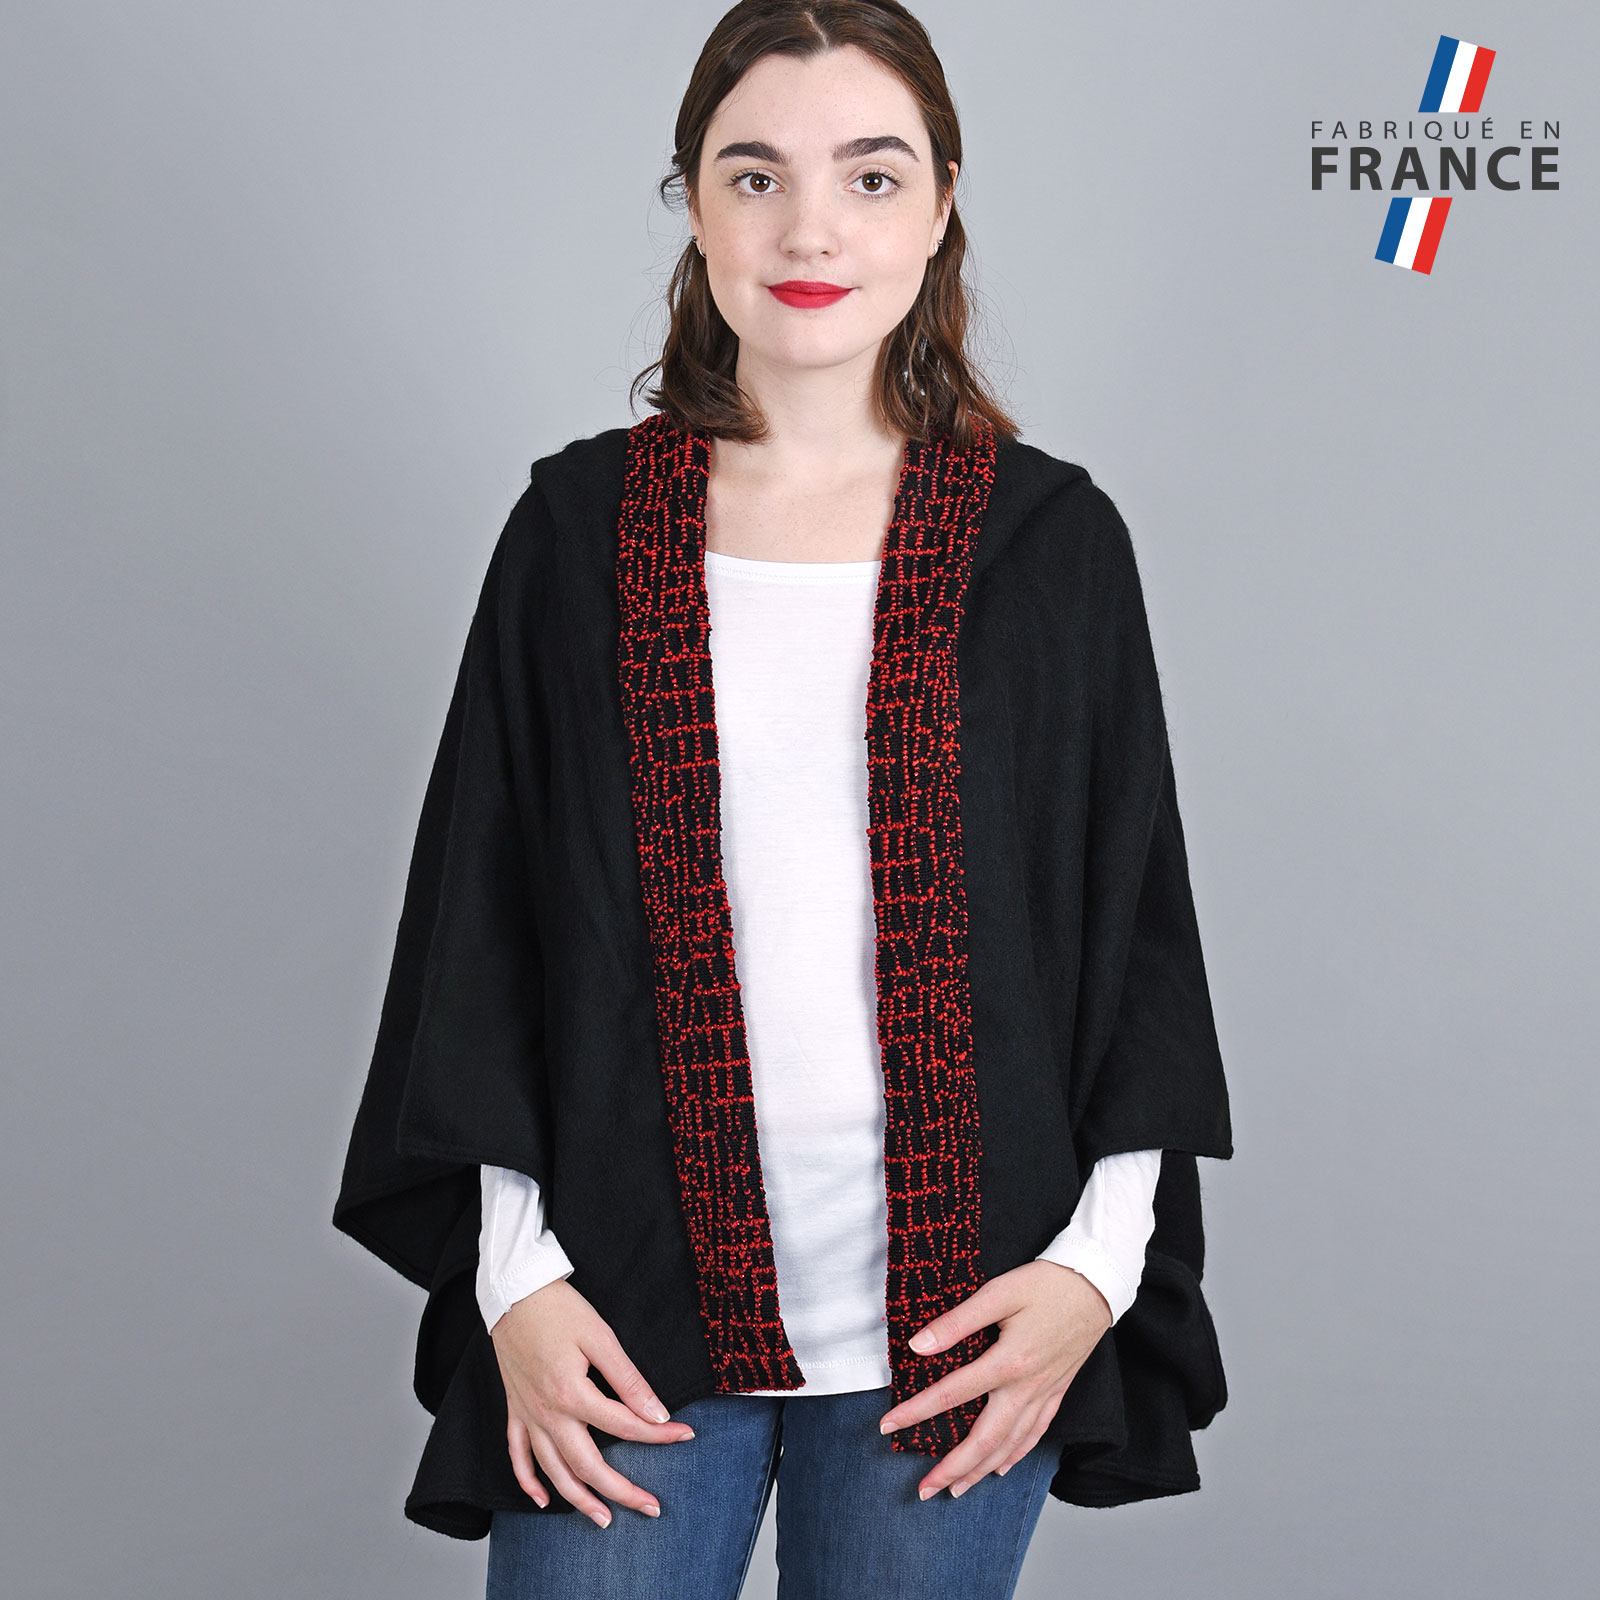 AT-03247-VF16-1-LB_FR-poncho-femme-a-capuche-perles-rouge-fabrication-francaise